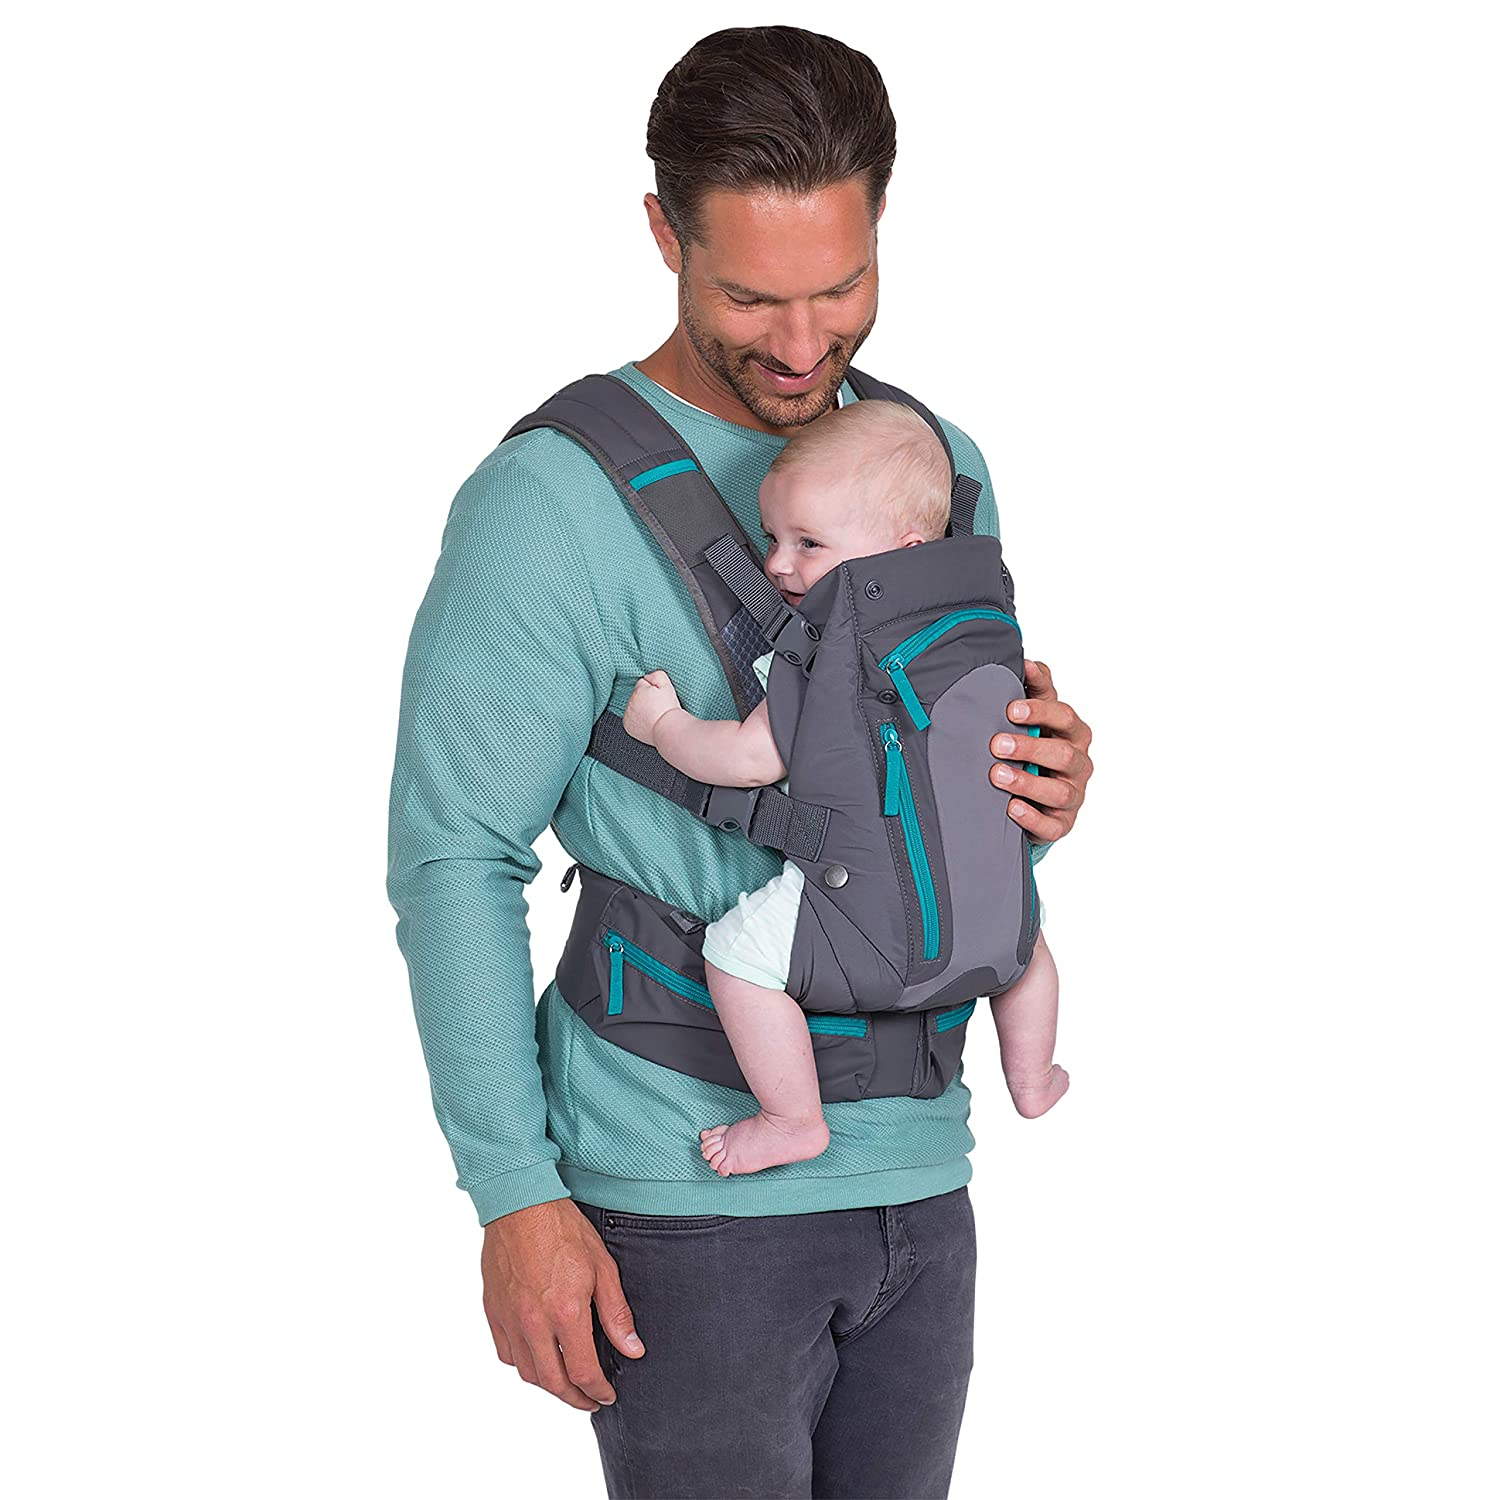 In the midst of all the beautiful first-time Dad moments, there are times that Dad might feel completely used up. This baby carrier will free his hands so he can do other works or maybe have some time for himself while keeping his baby by his side all the time.